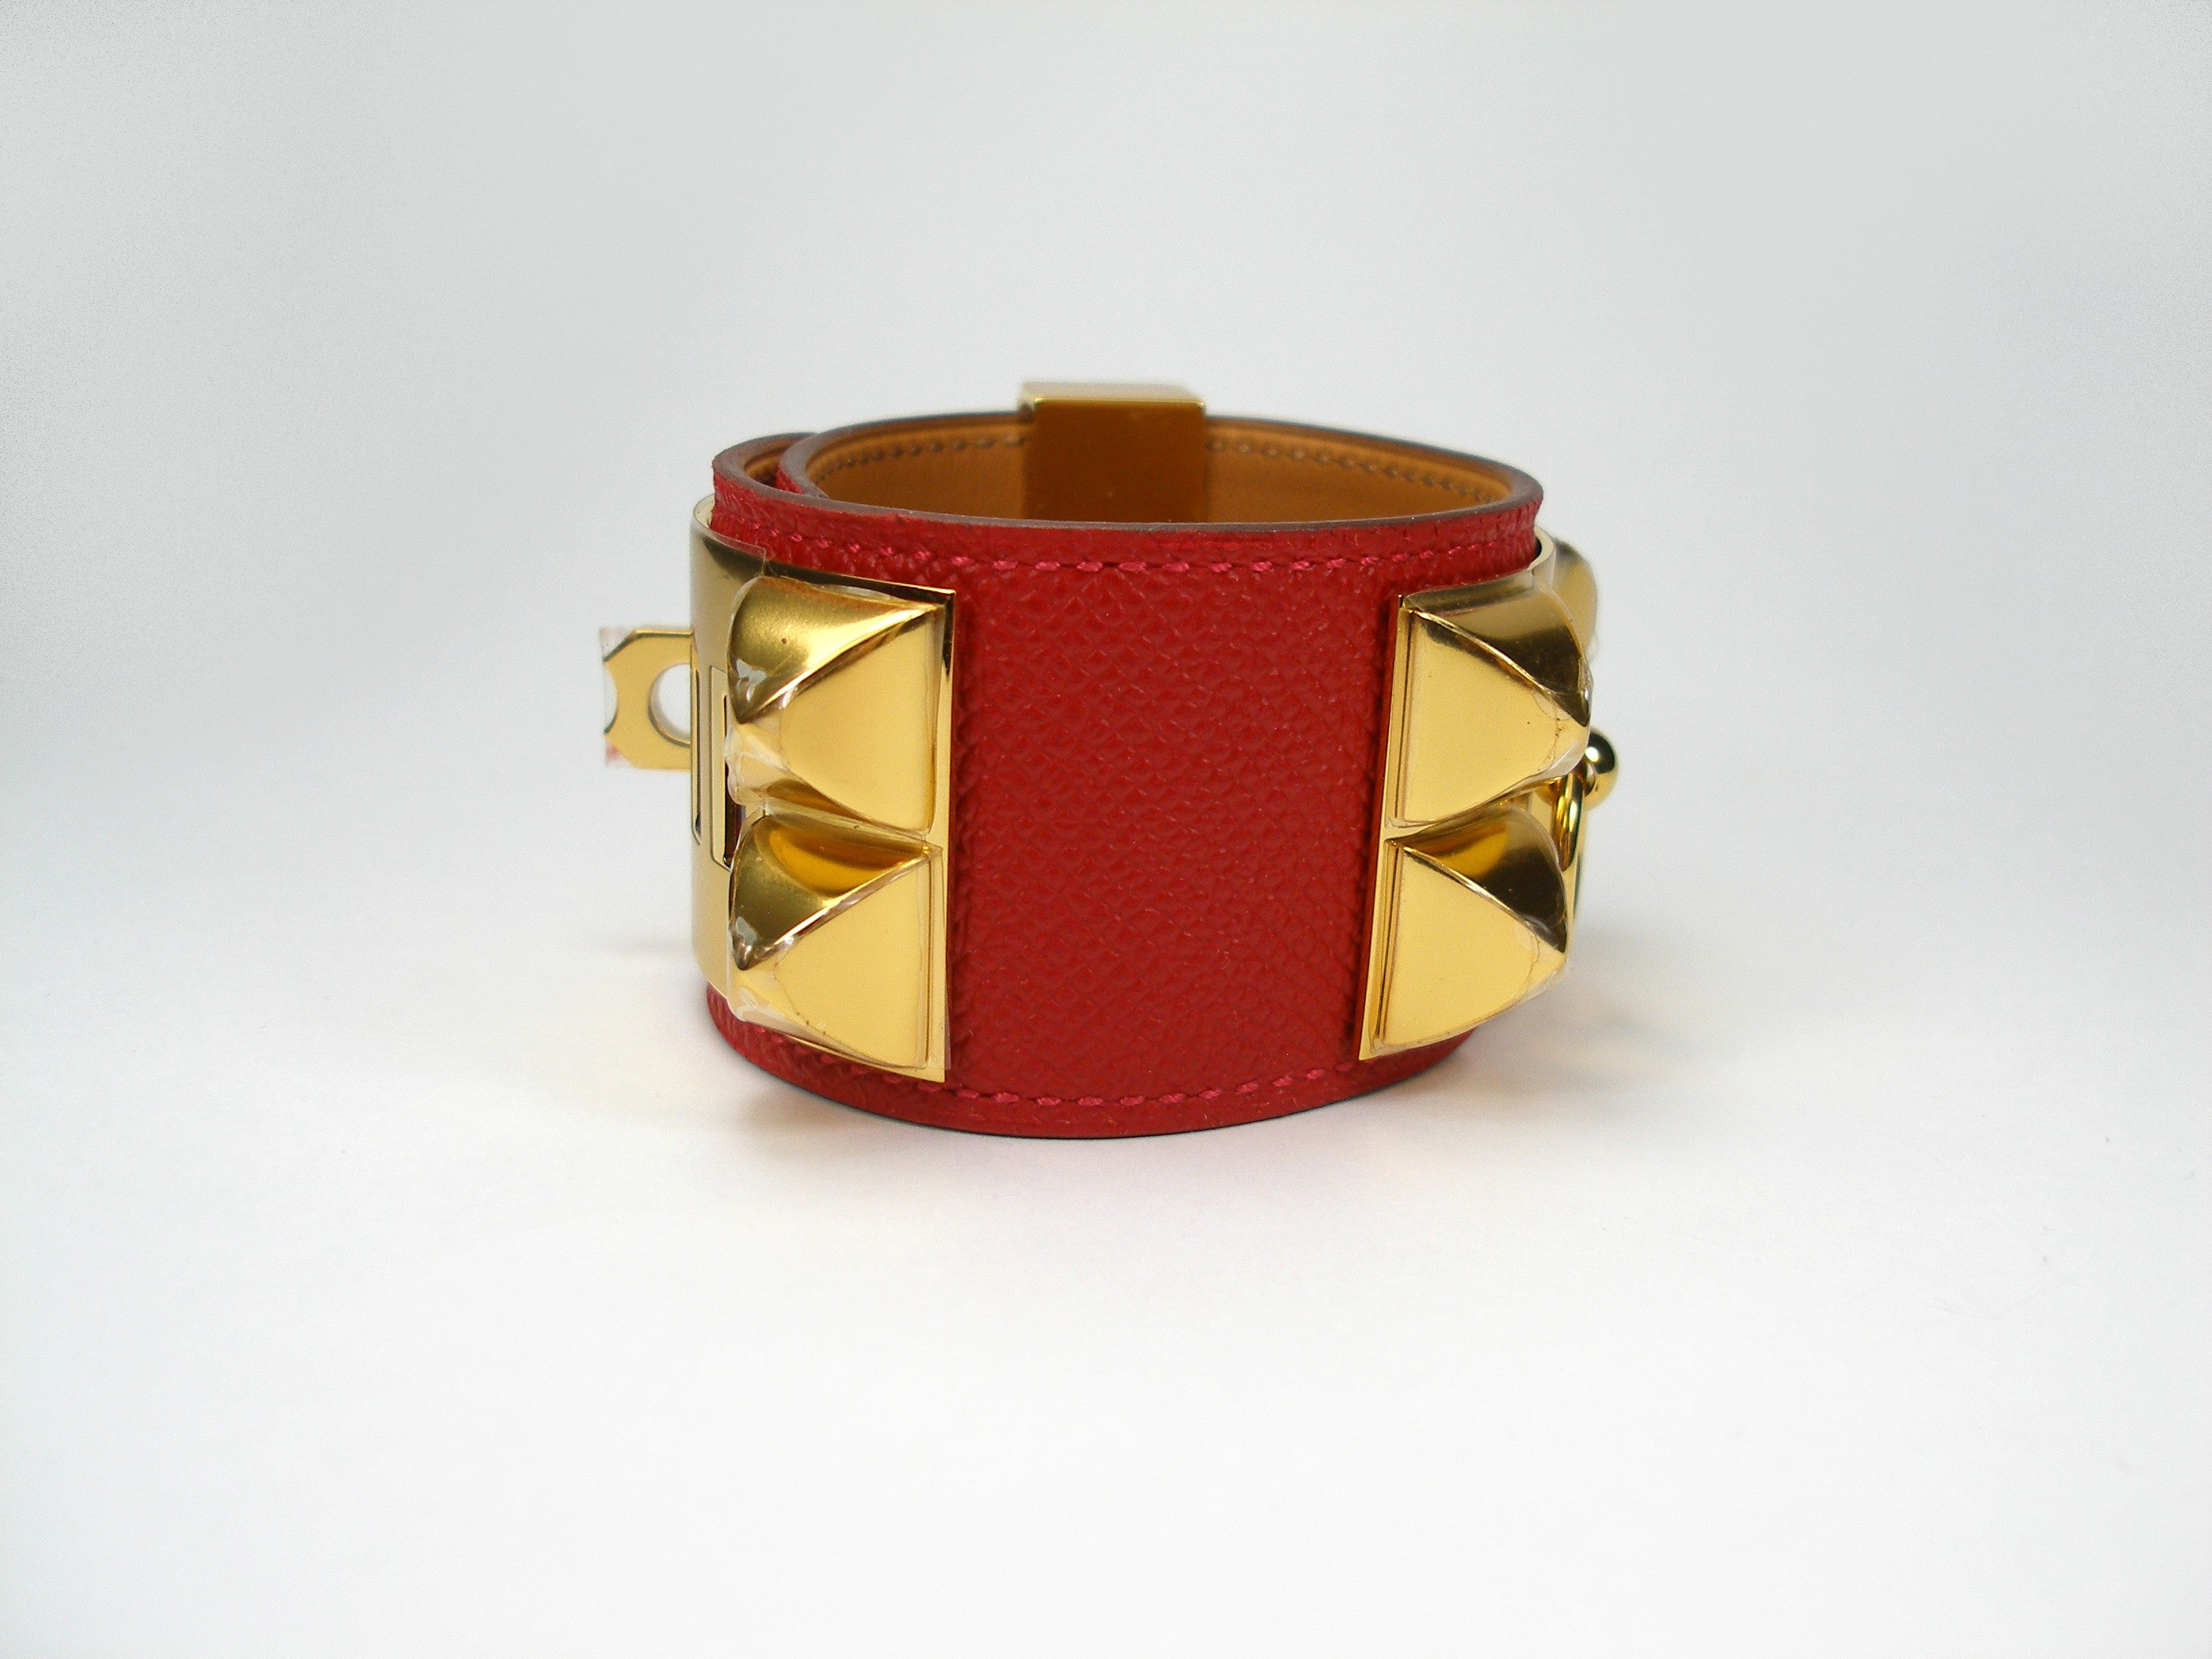 bangle de collier the chien bracelet herm enlarged bracelets hermes s jewelry products